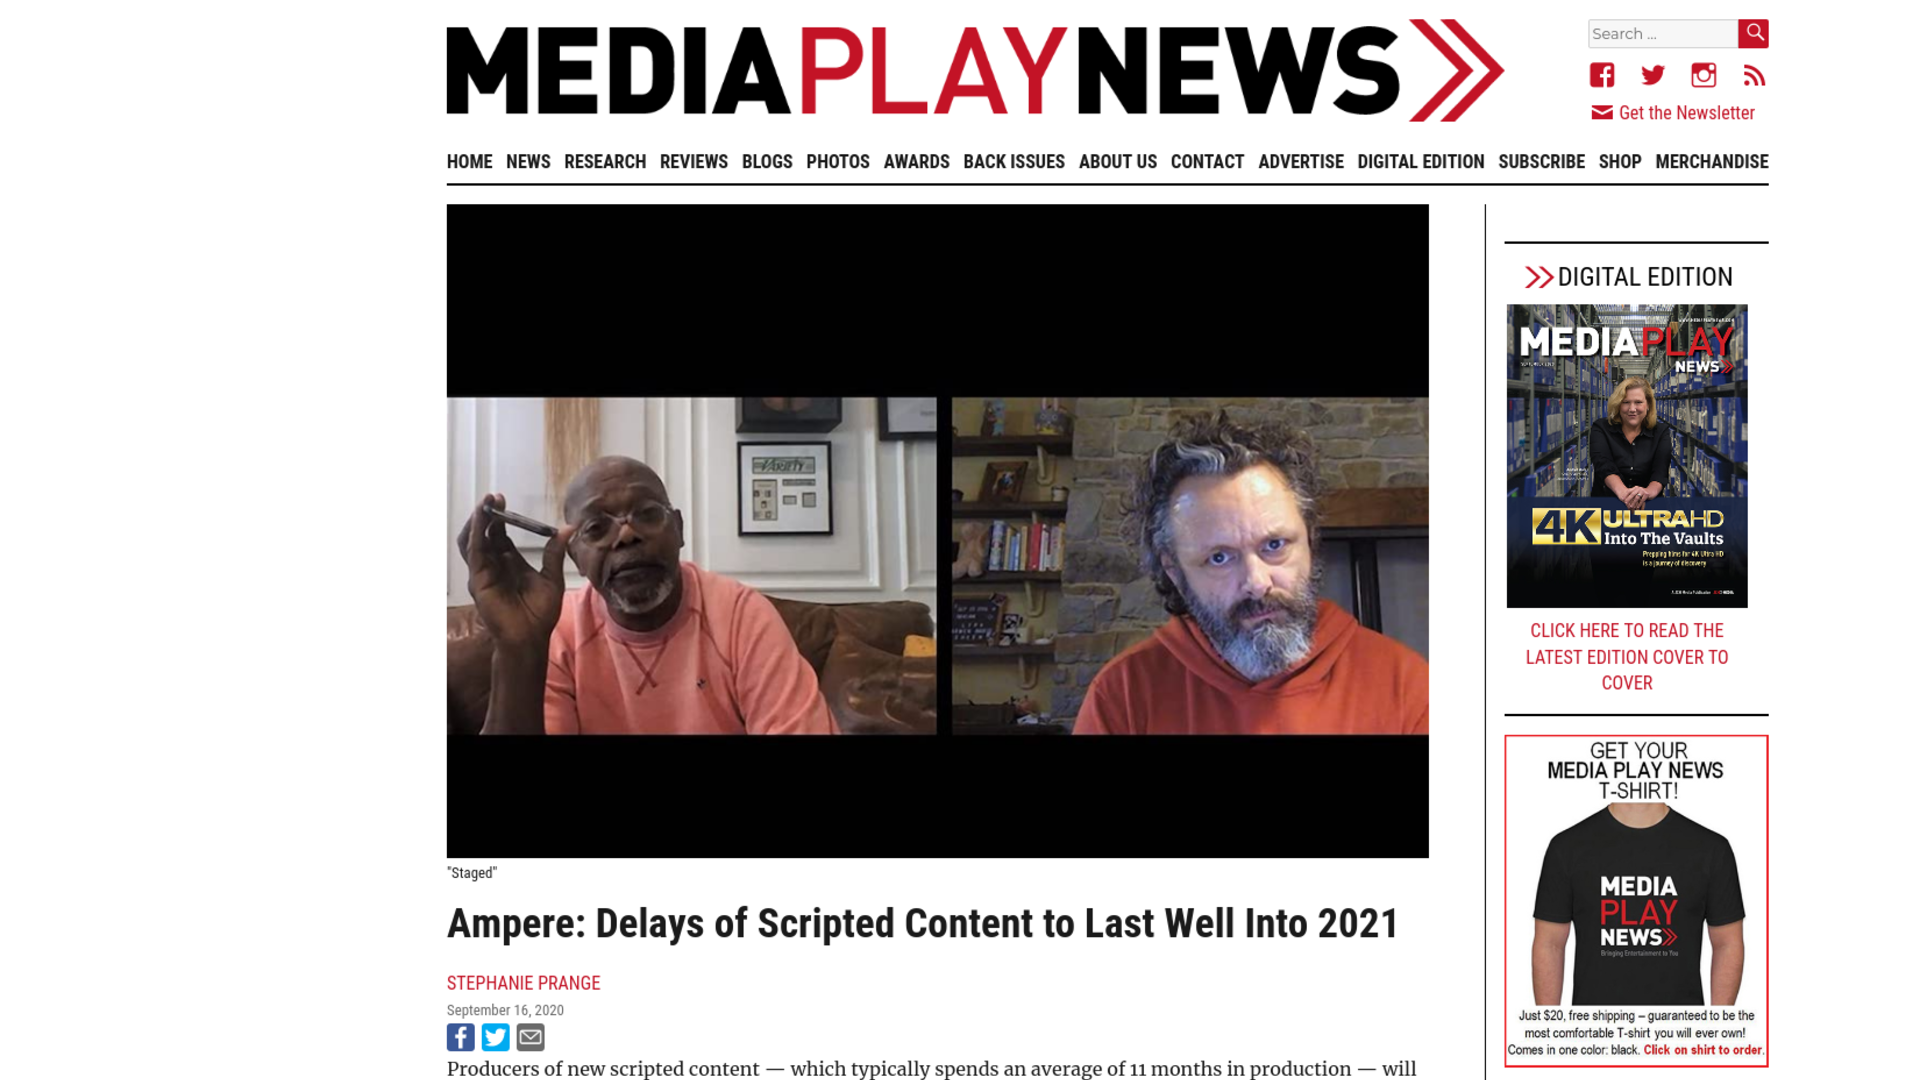 Fairness Rocks News Ampere: Delays of Scripted Content to Last Well Into 2021